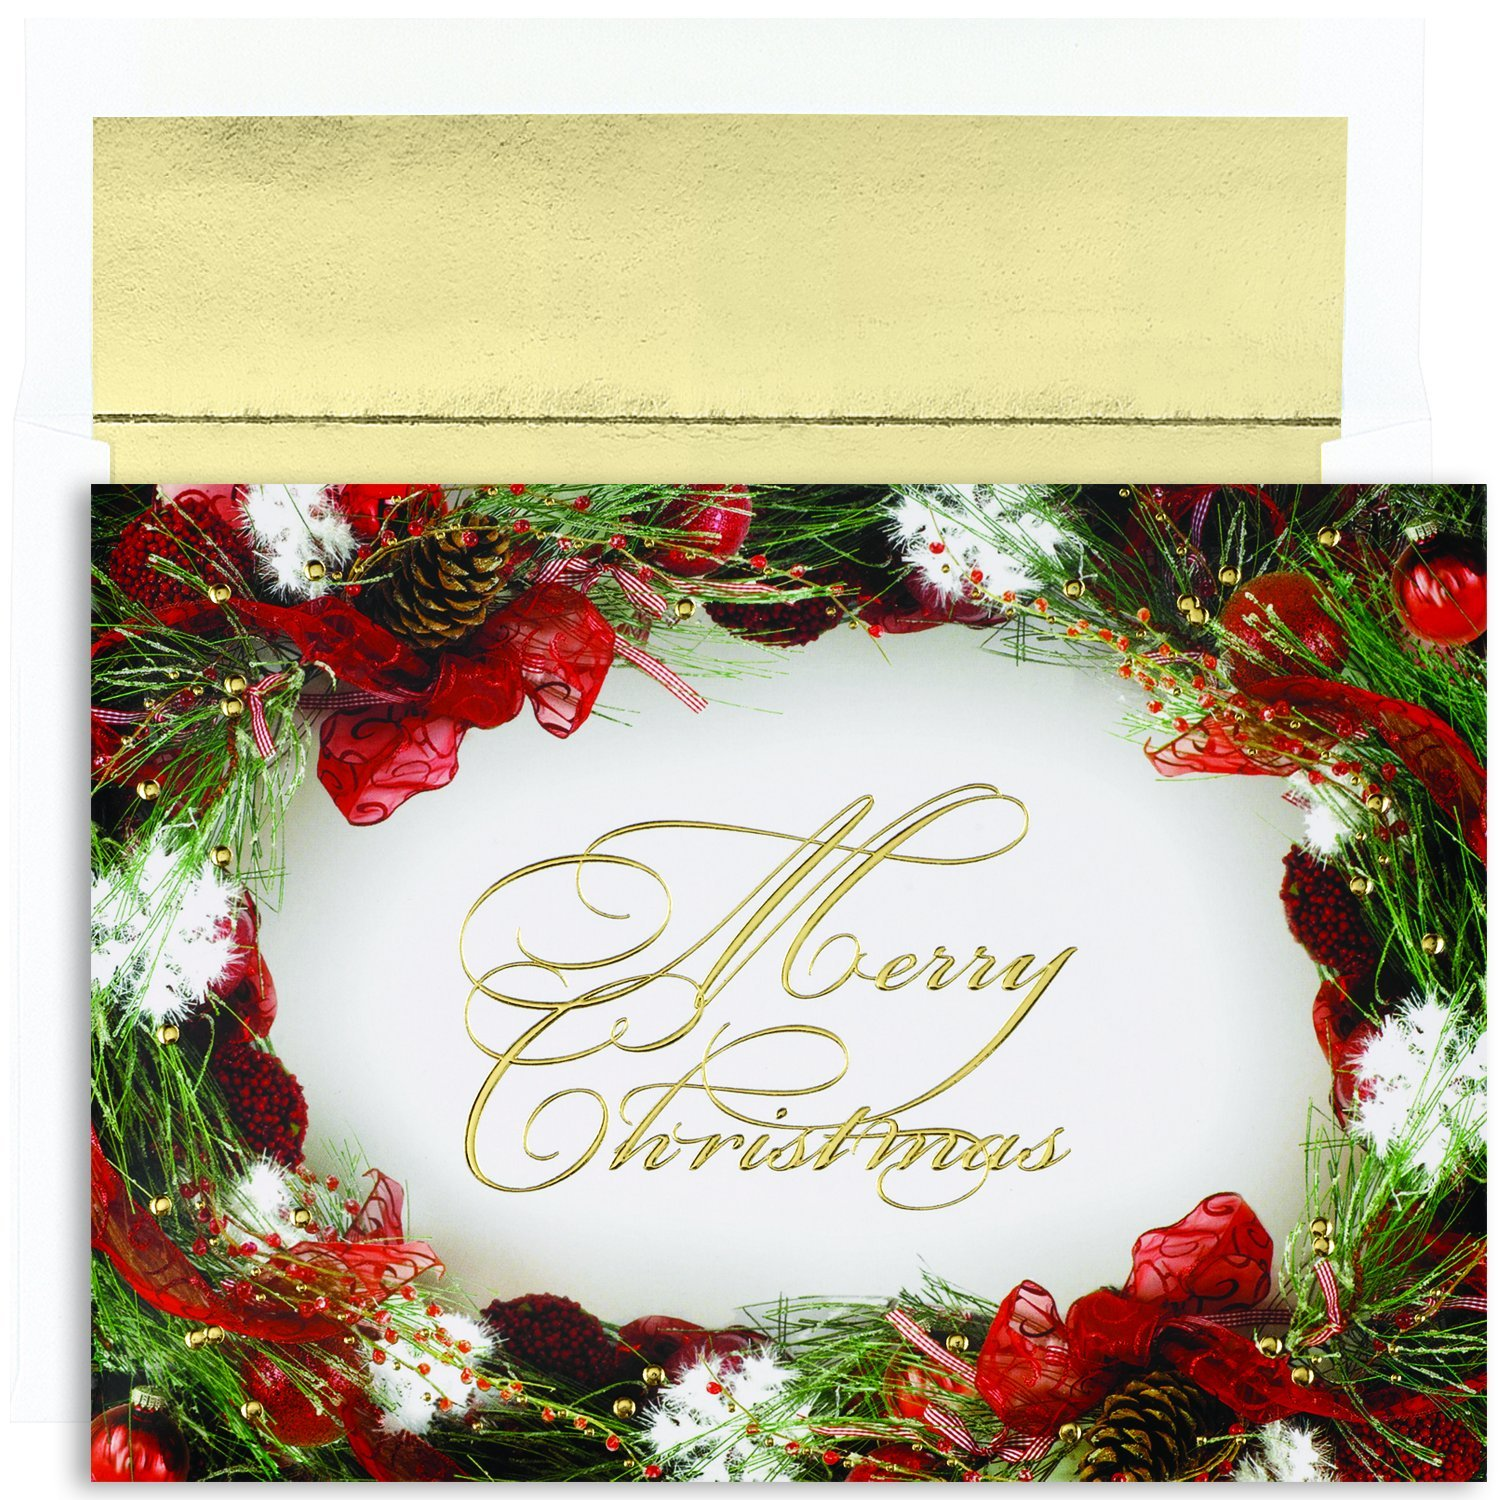 Amazon masterpiece studios holiday collection boxed christmas amazon masterpiece studios holiday collection boxed christmas cards wreath border 18 cards18 foil lined envelopes office products kristyandbryce Image collections